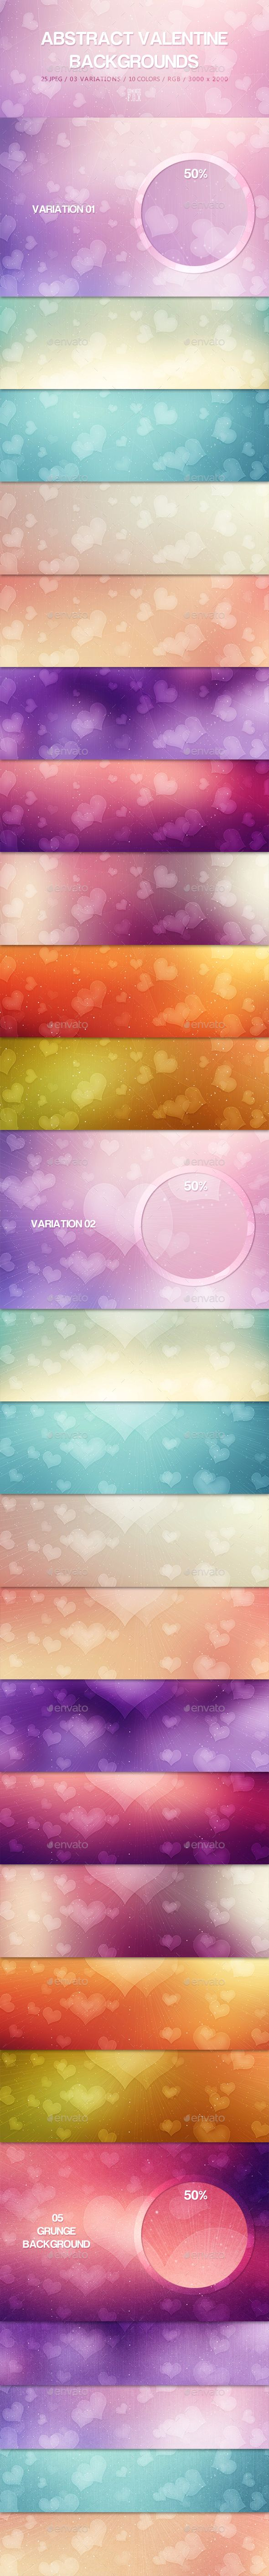 25 Abstract Valentine Backgrounds - Download…